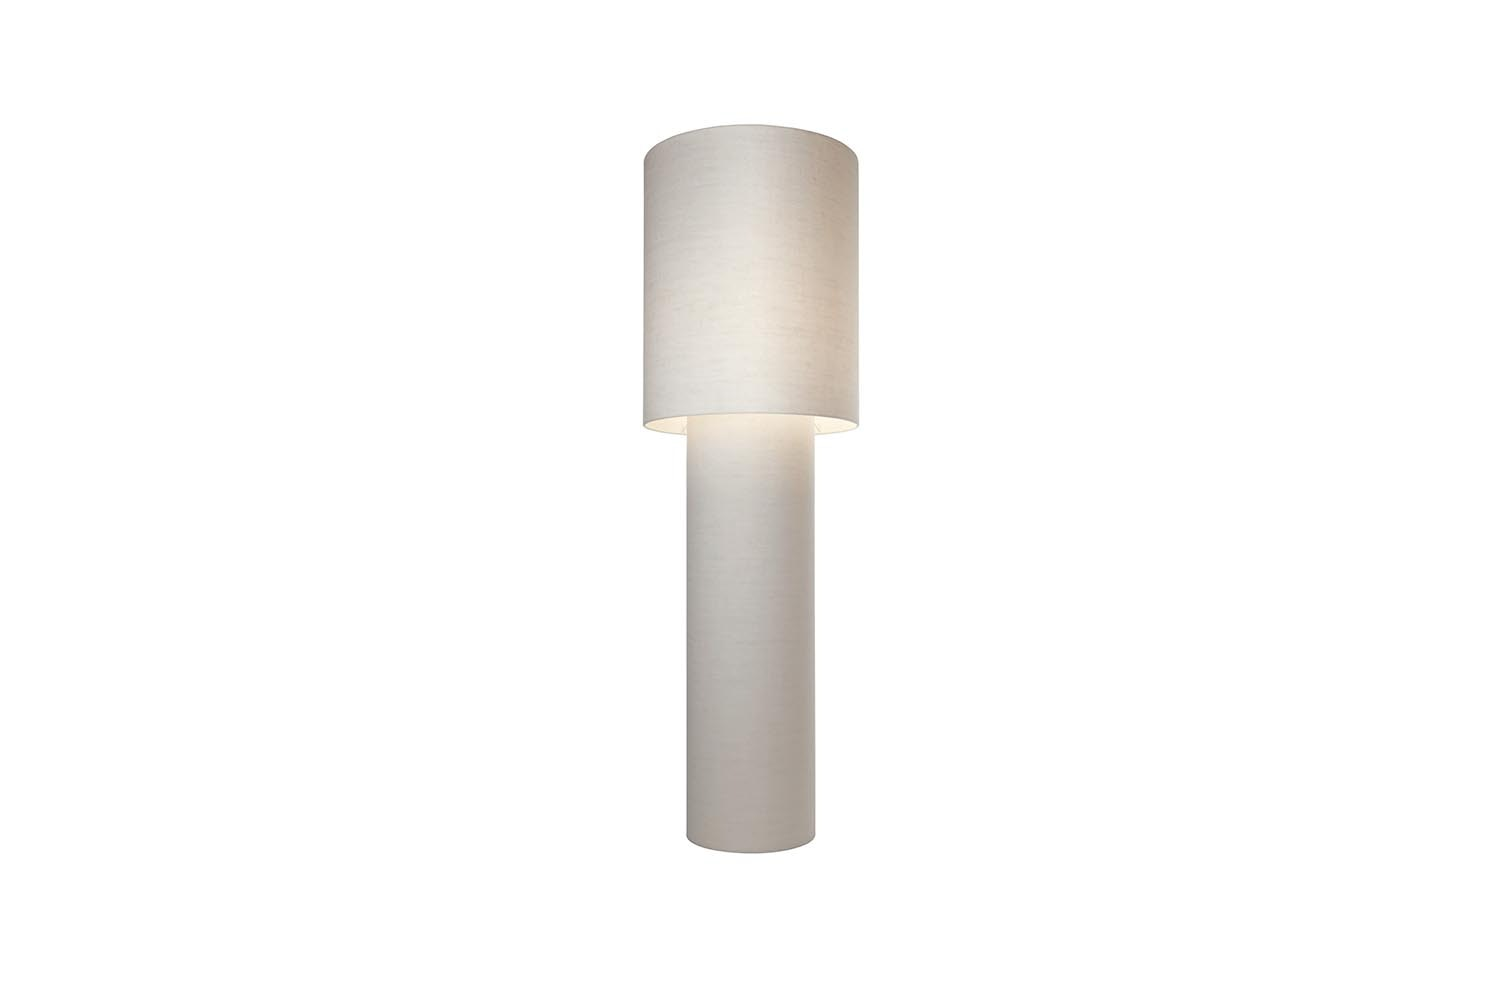 Pipe Grande Floor Lamp by Successful Living from DIESEL for Foscarini